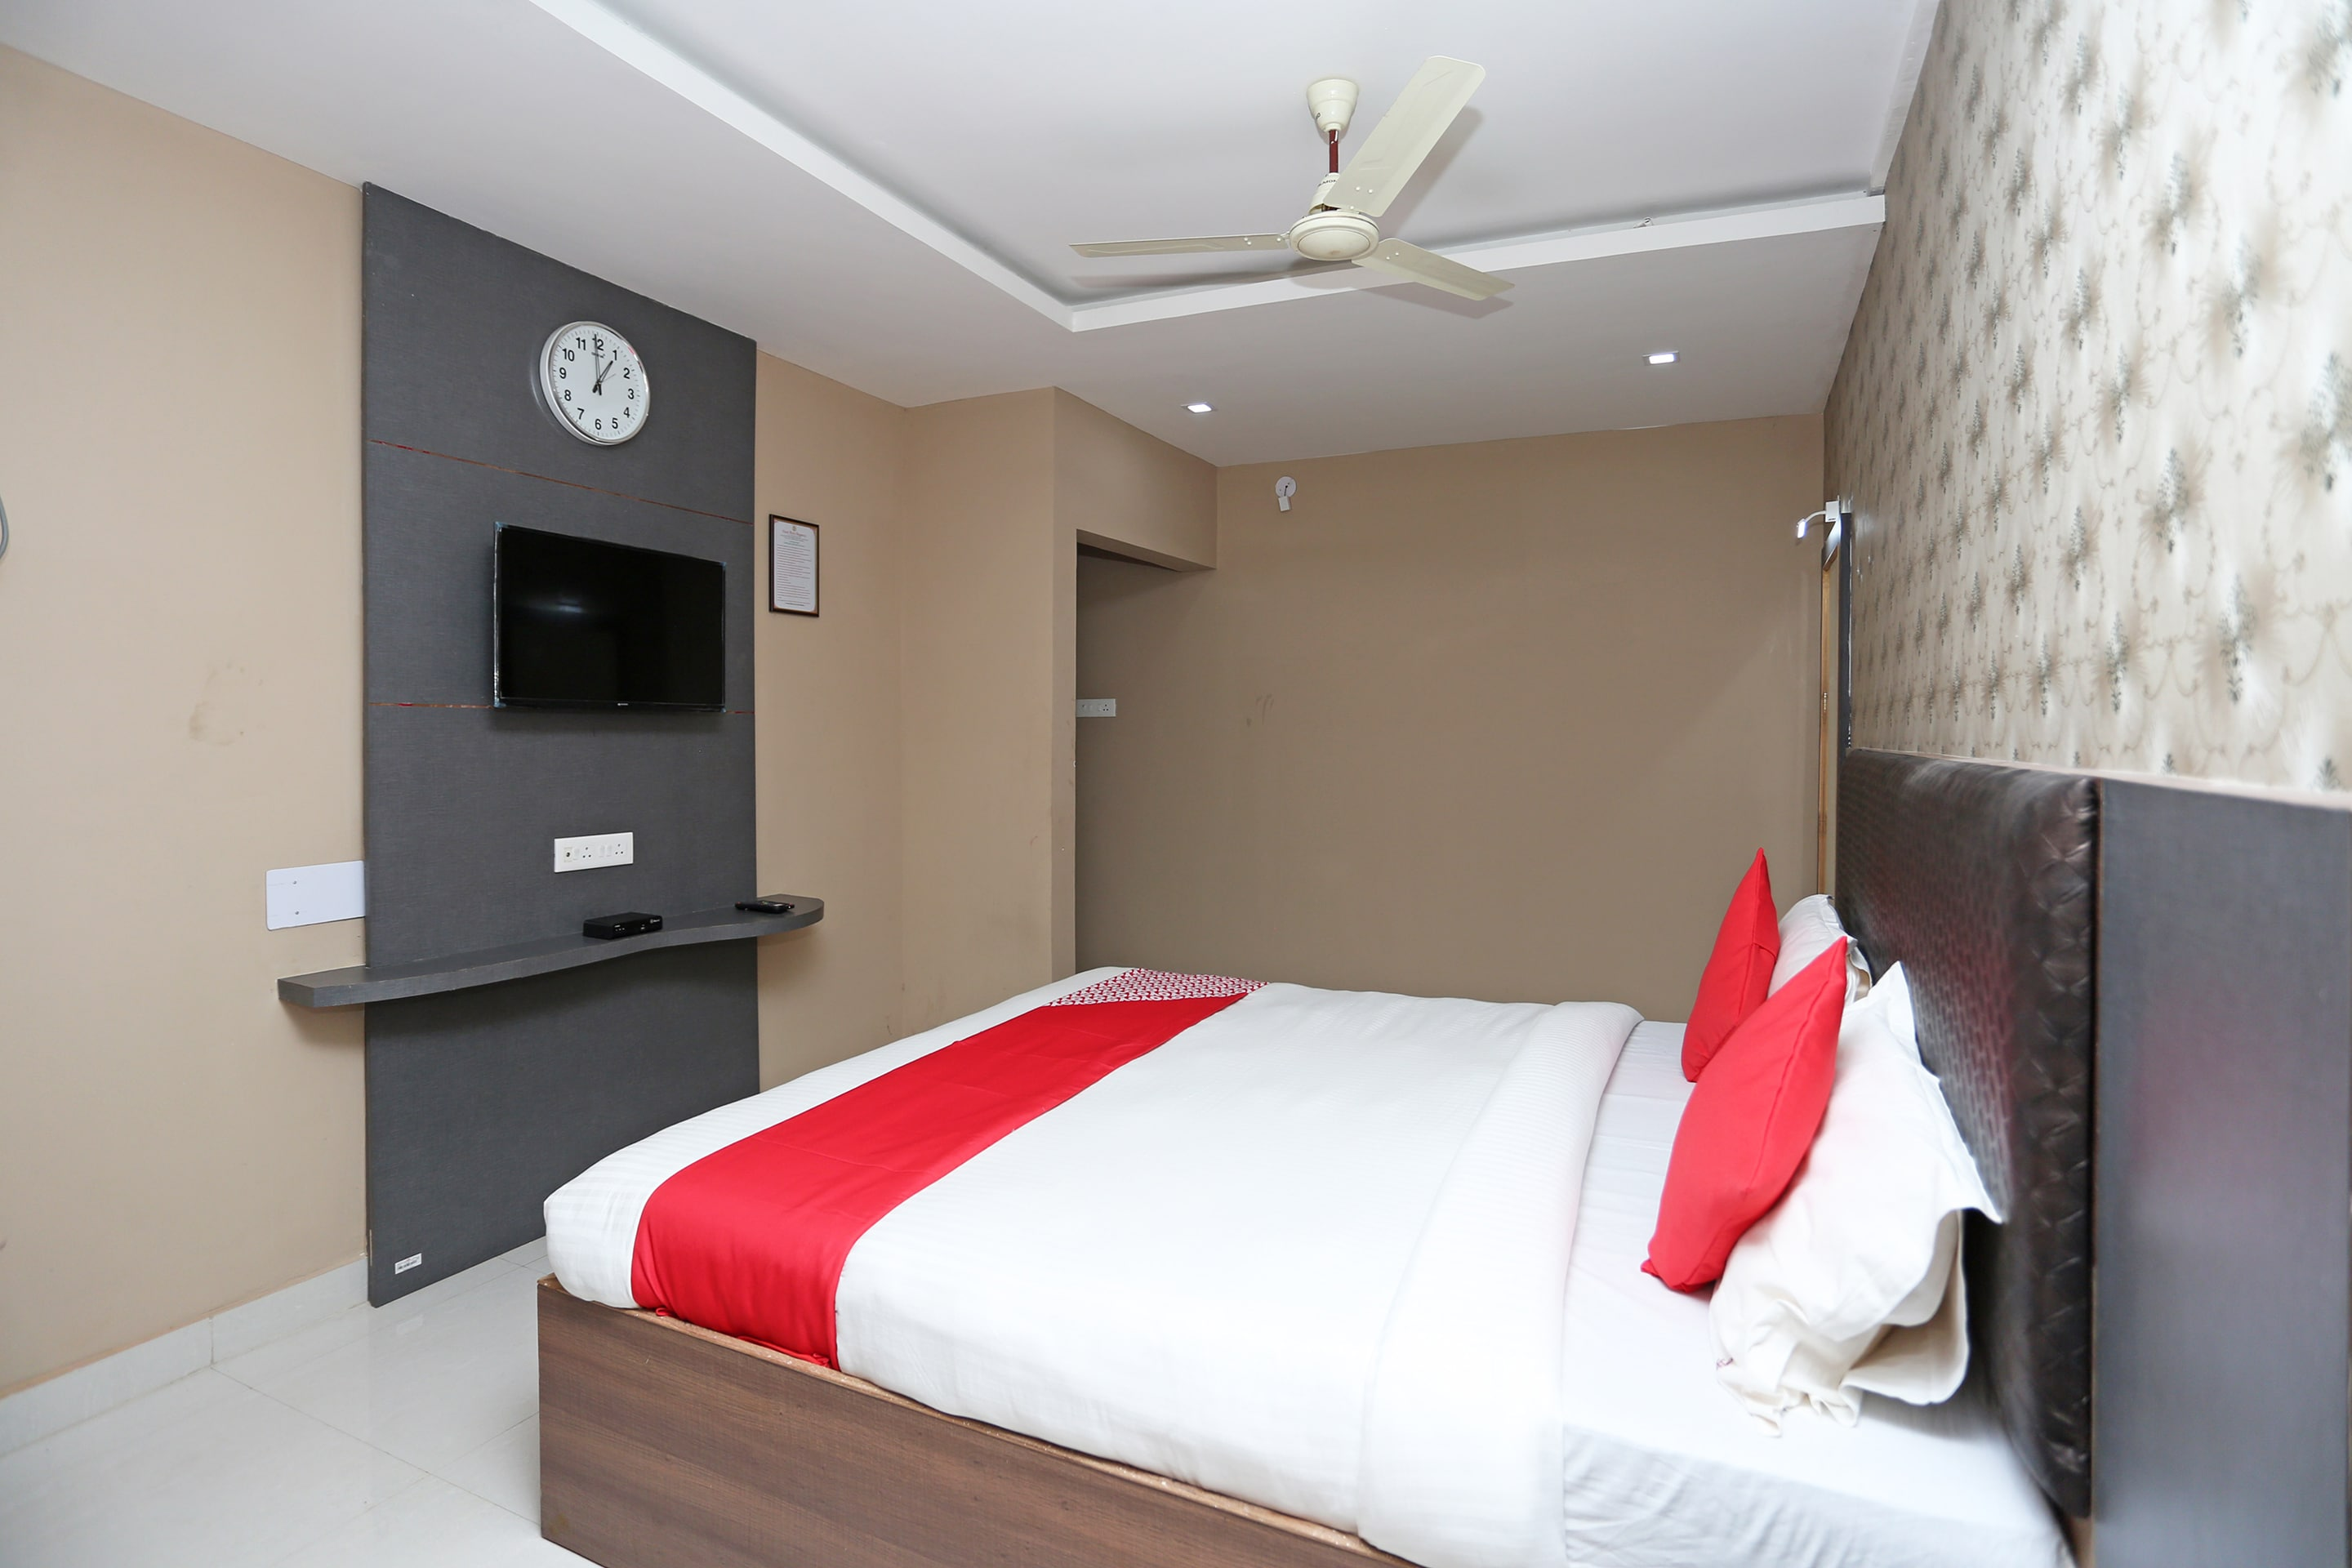 Book OYO 4230 Hotel Richi Regency 1 in Bhubaneswar